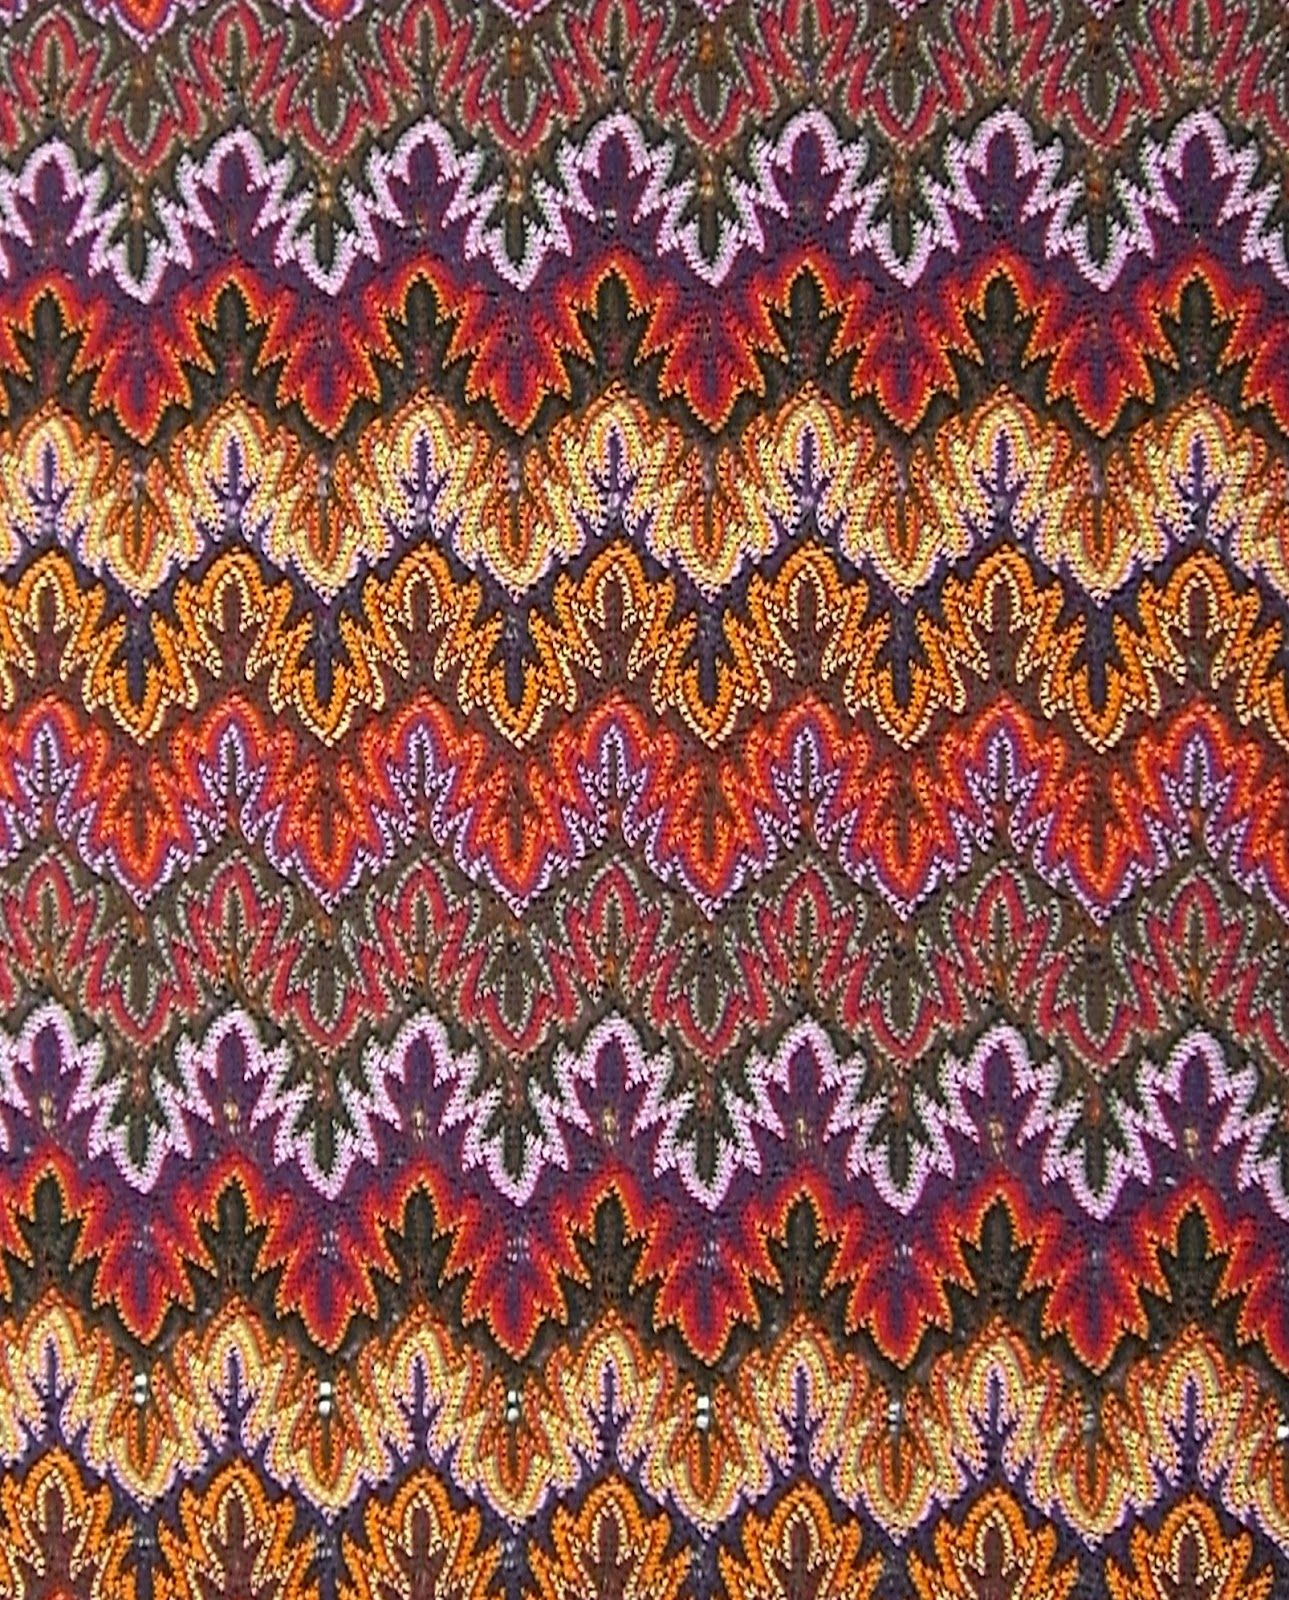 Vintage missoni fabric google search inspirational 4 pinterest pattern design dt1010fo